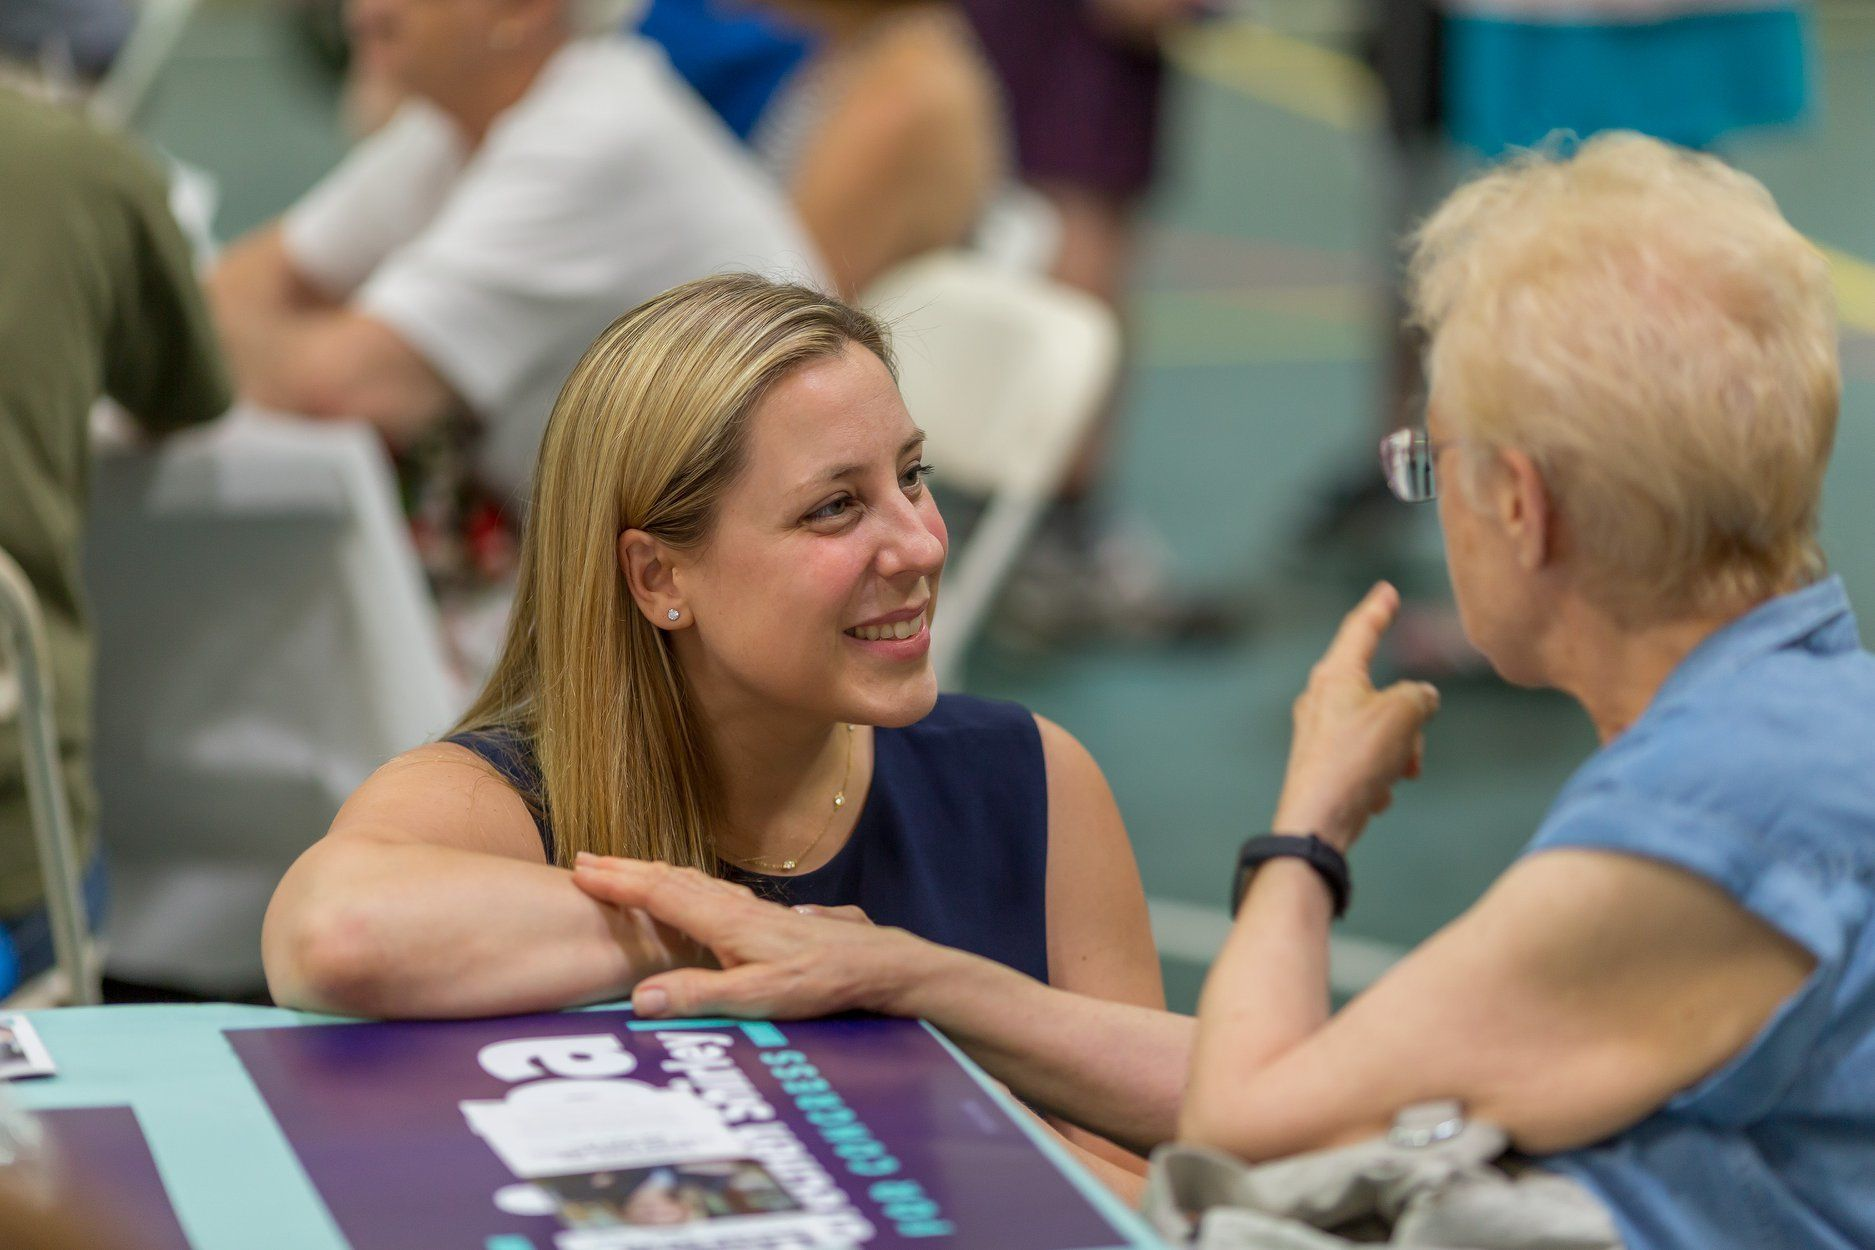 Democrat Liuba Grechen Shirley, 37, speaks to a voter while campaigning in New York's 2nd Congressional District.